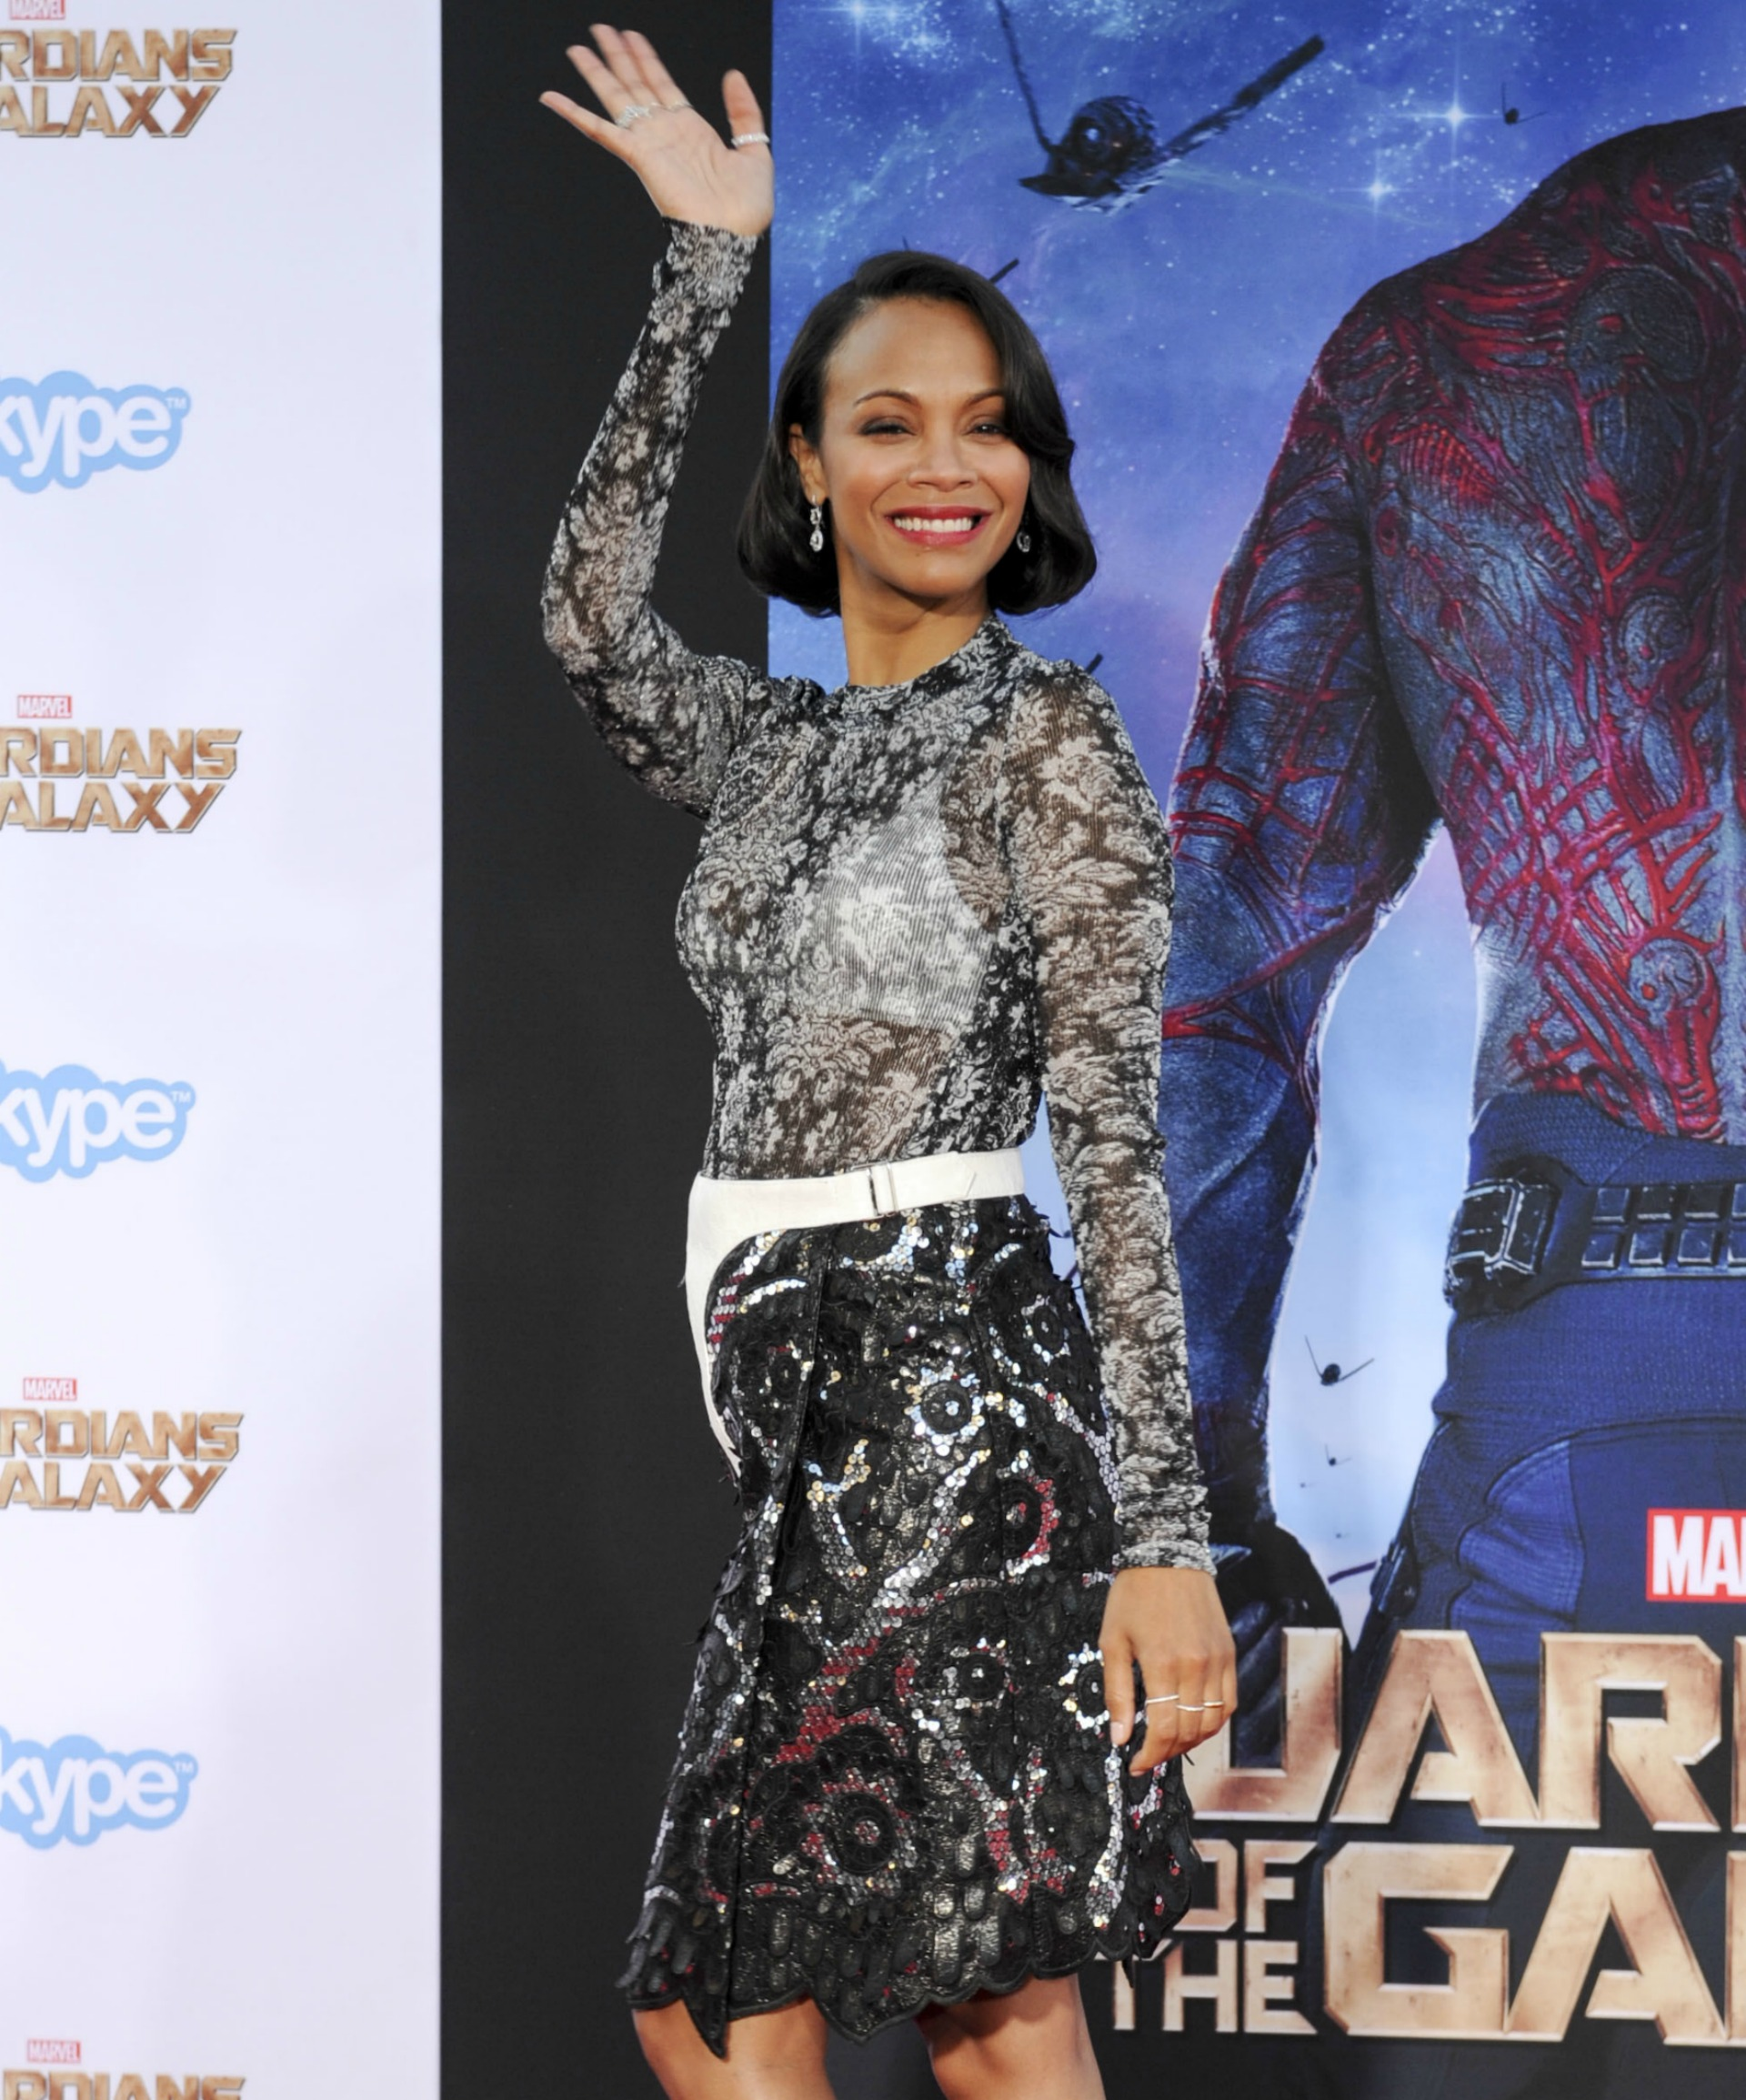 Zoe Saldana and husband Marco Perego are expecting a baby, publicist confirms